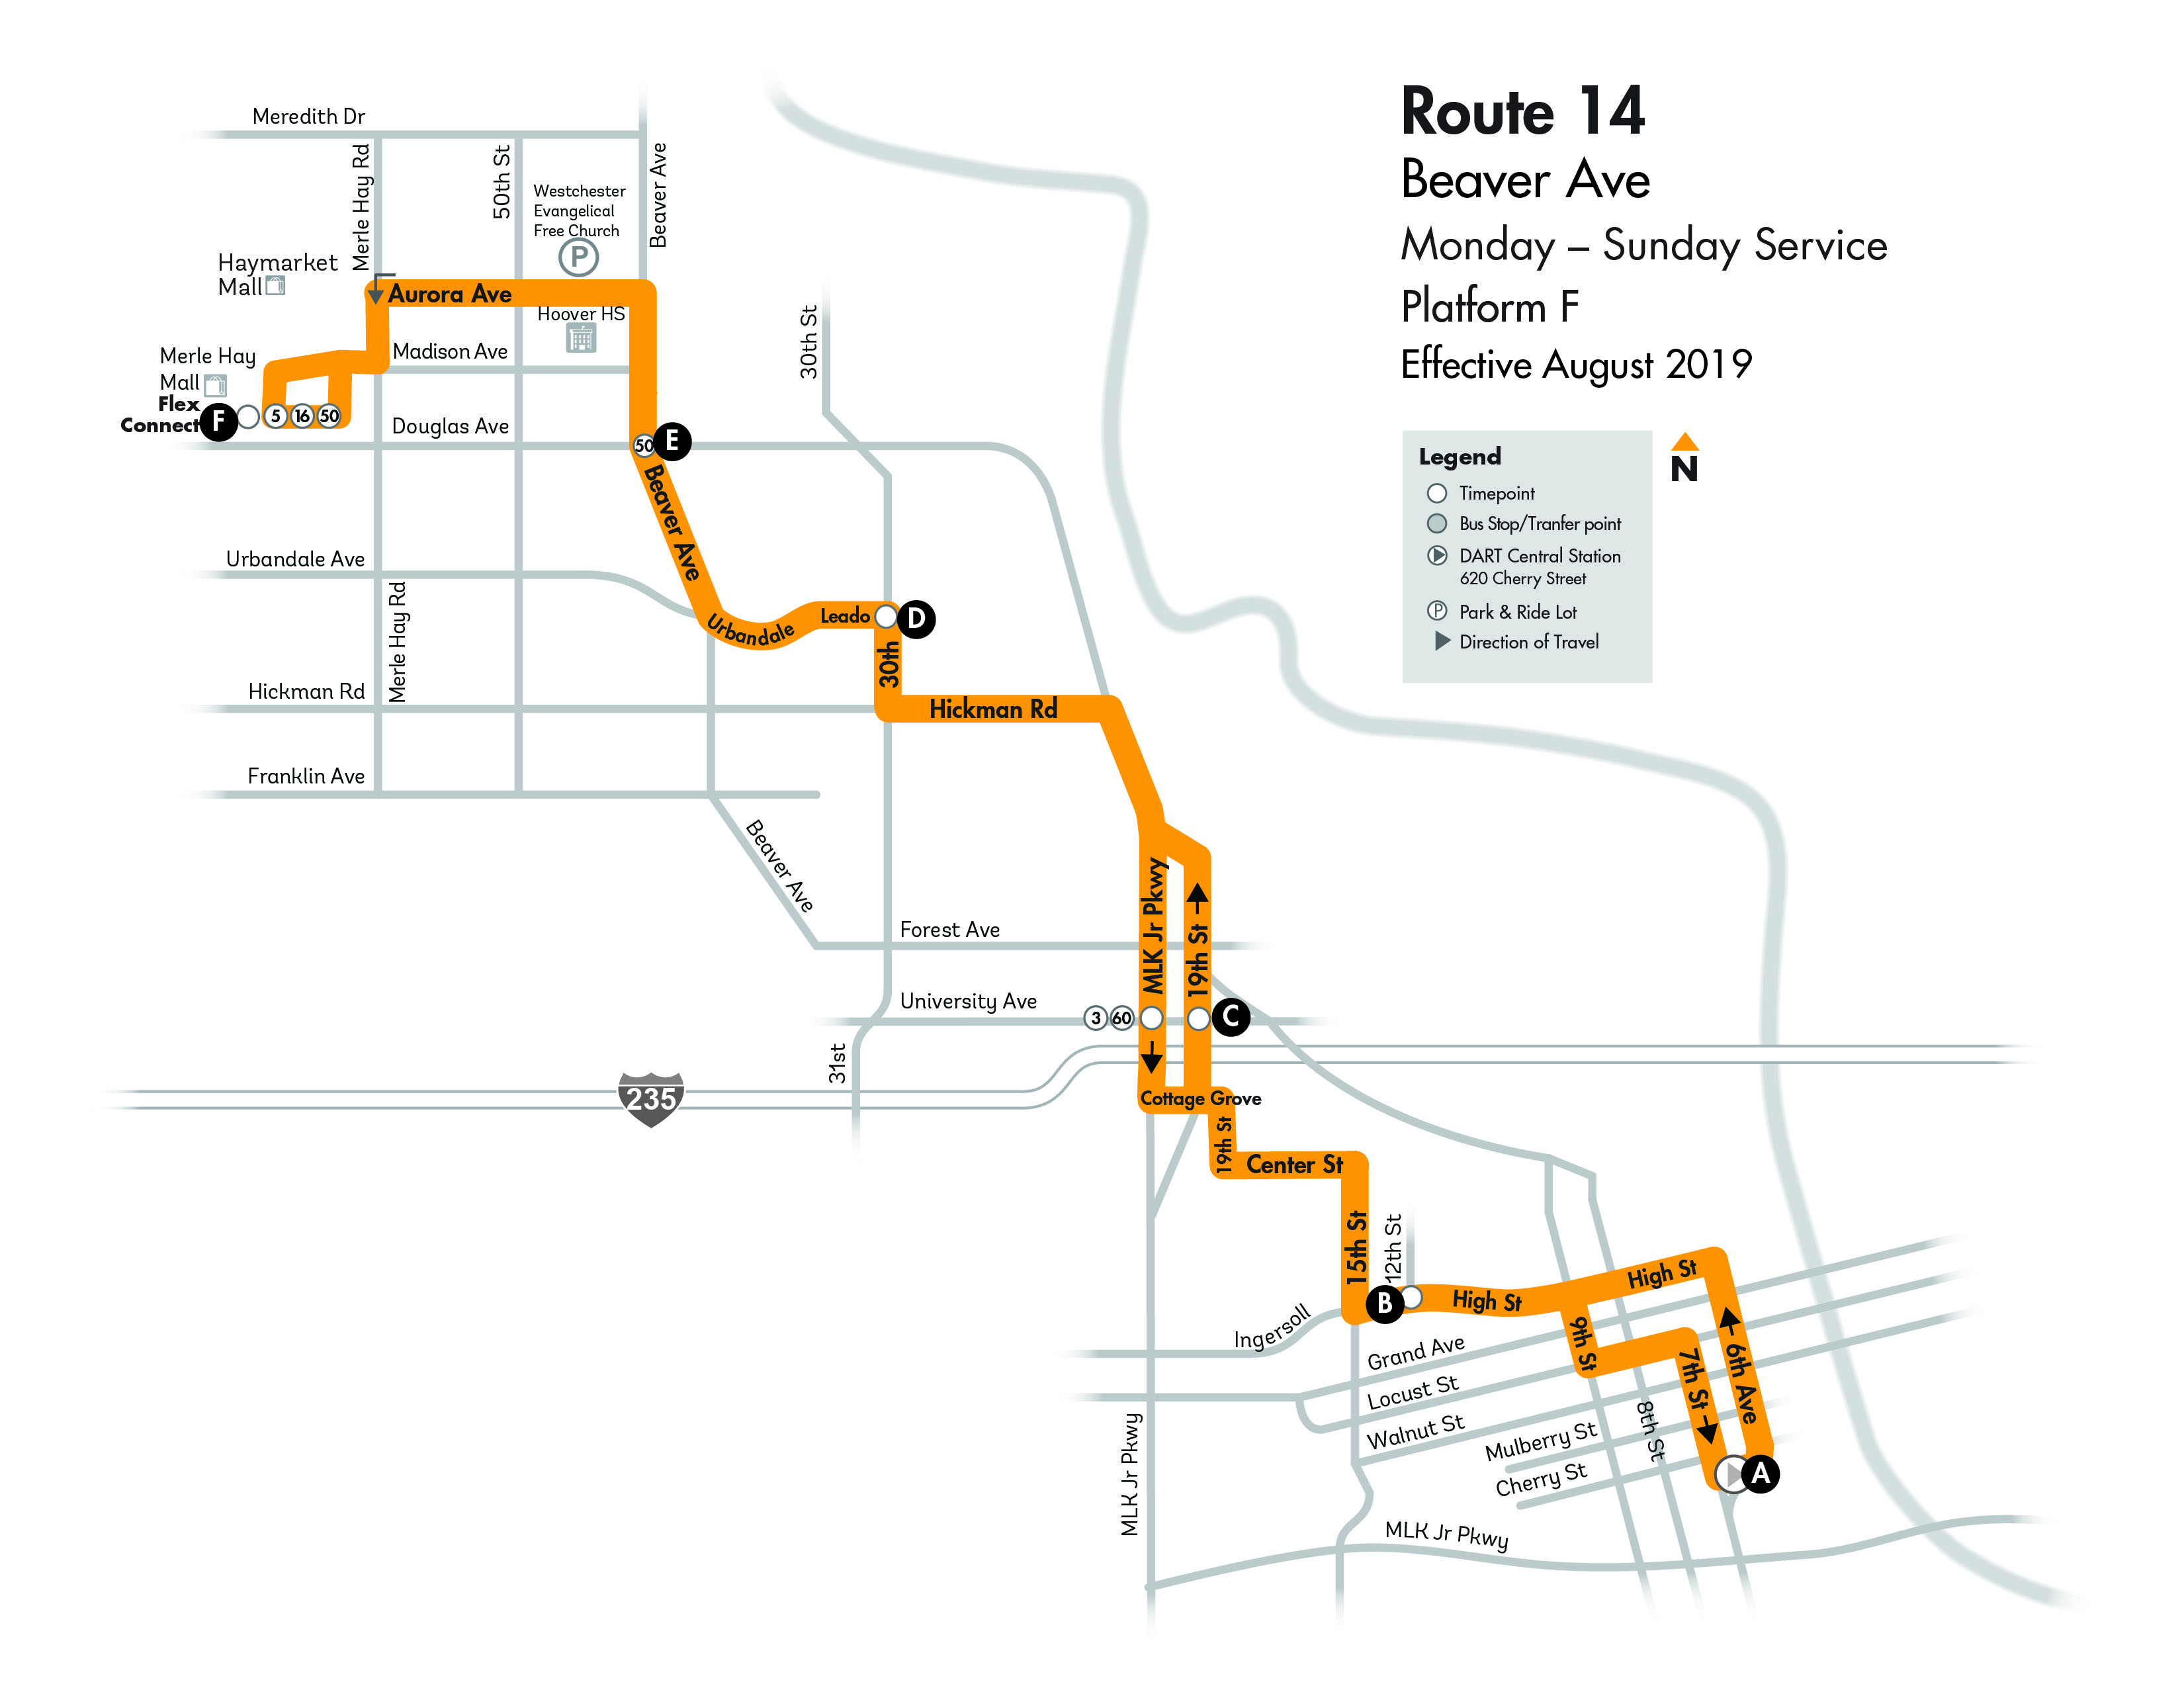 DART Local Route 14 - Beaver Map